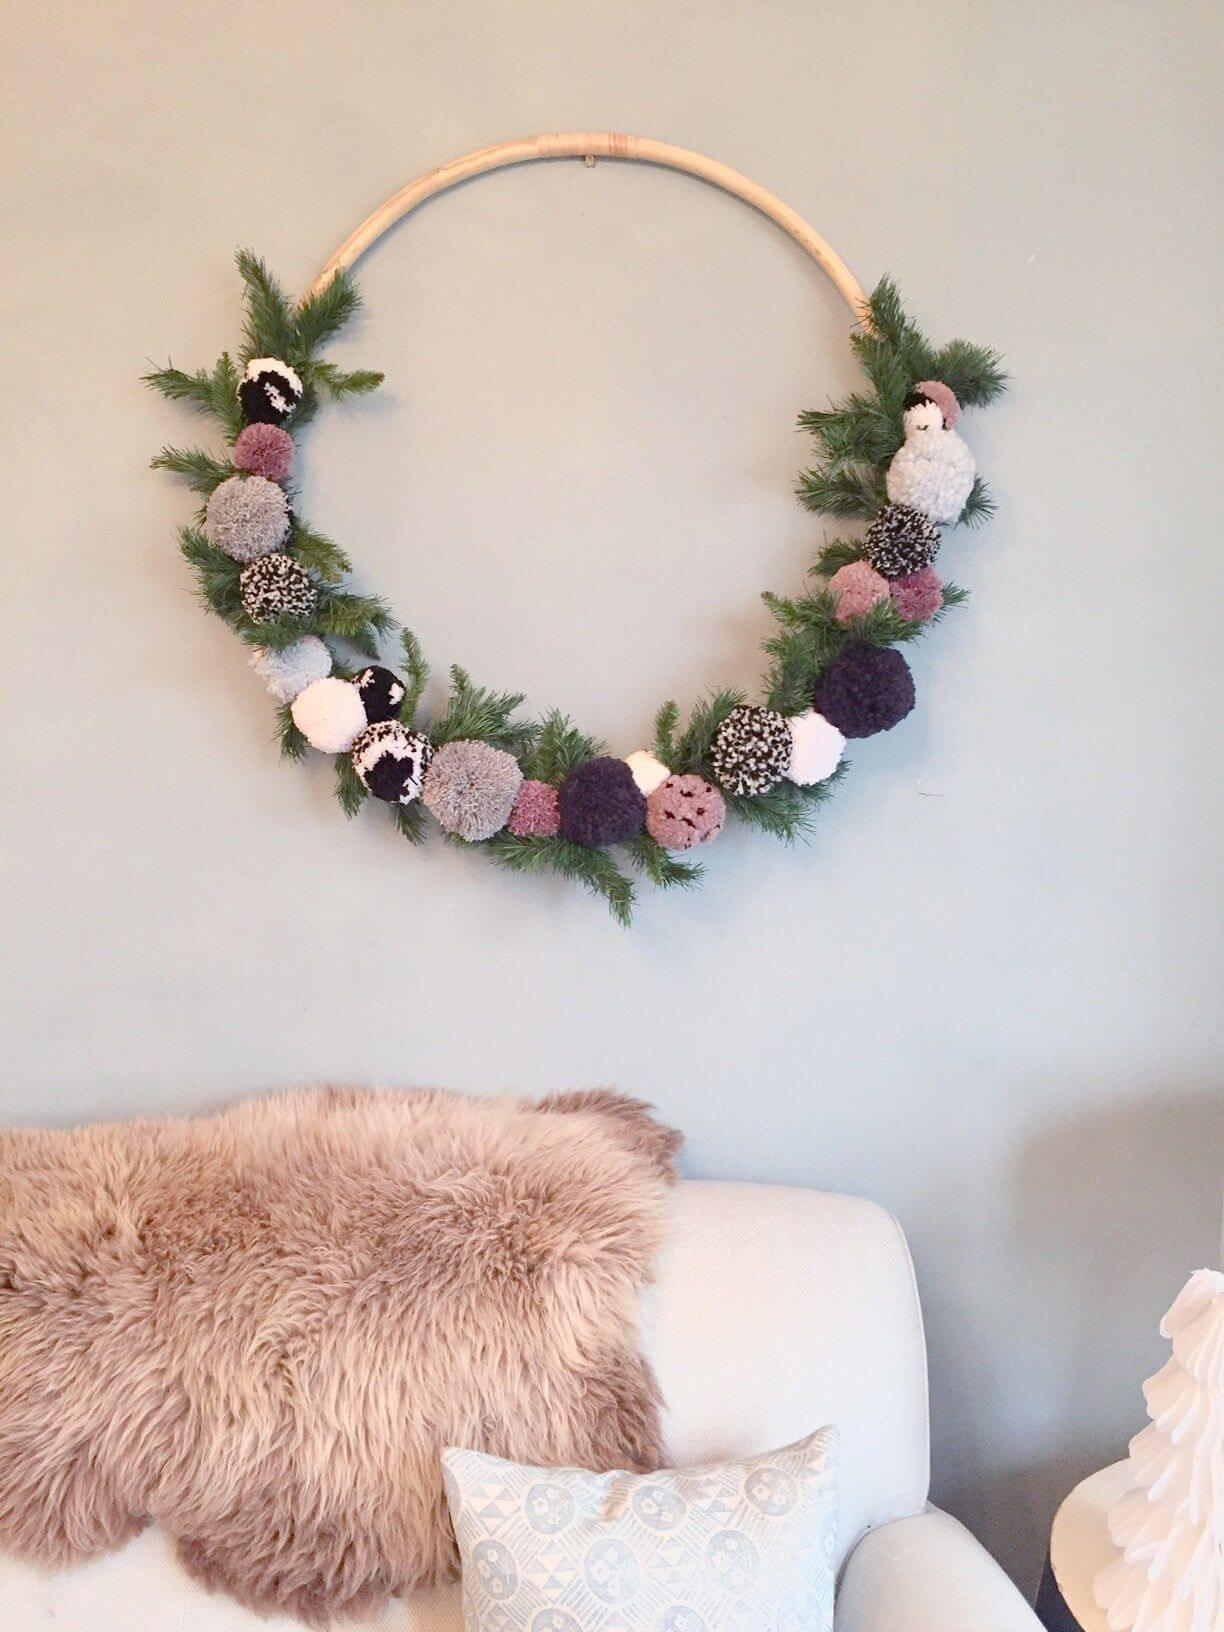 Round Fl Wall Hanging With Greenery